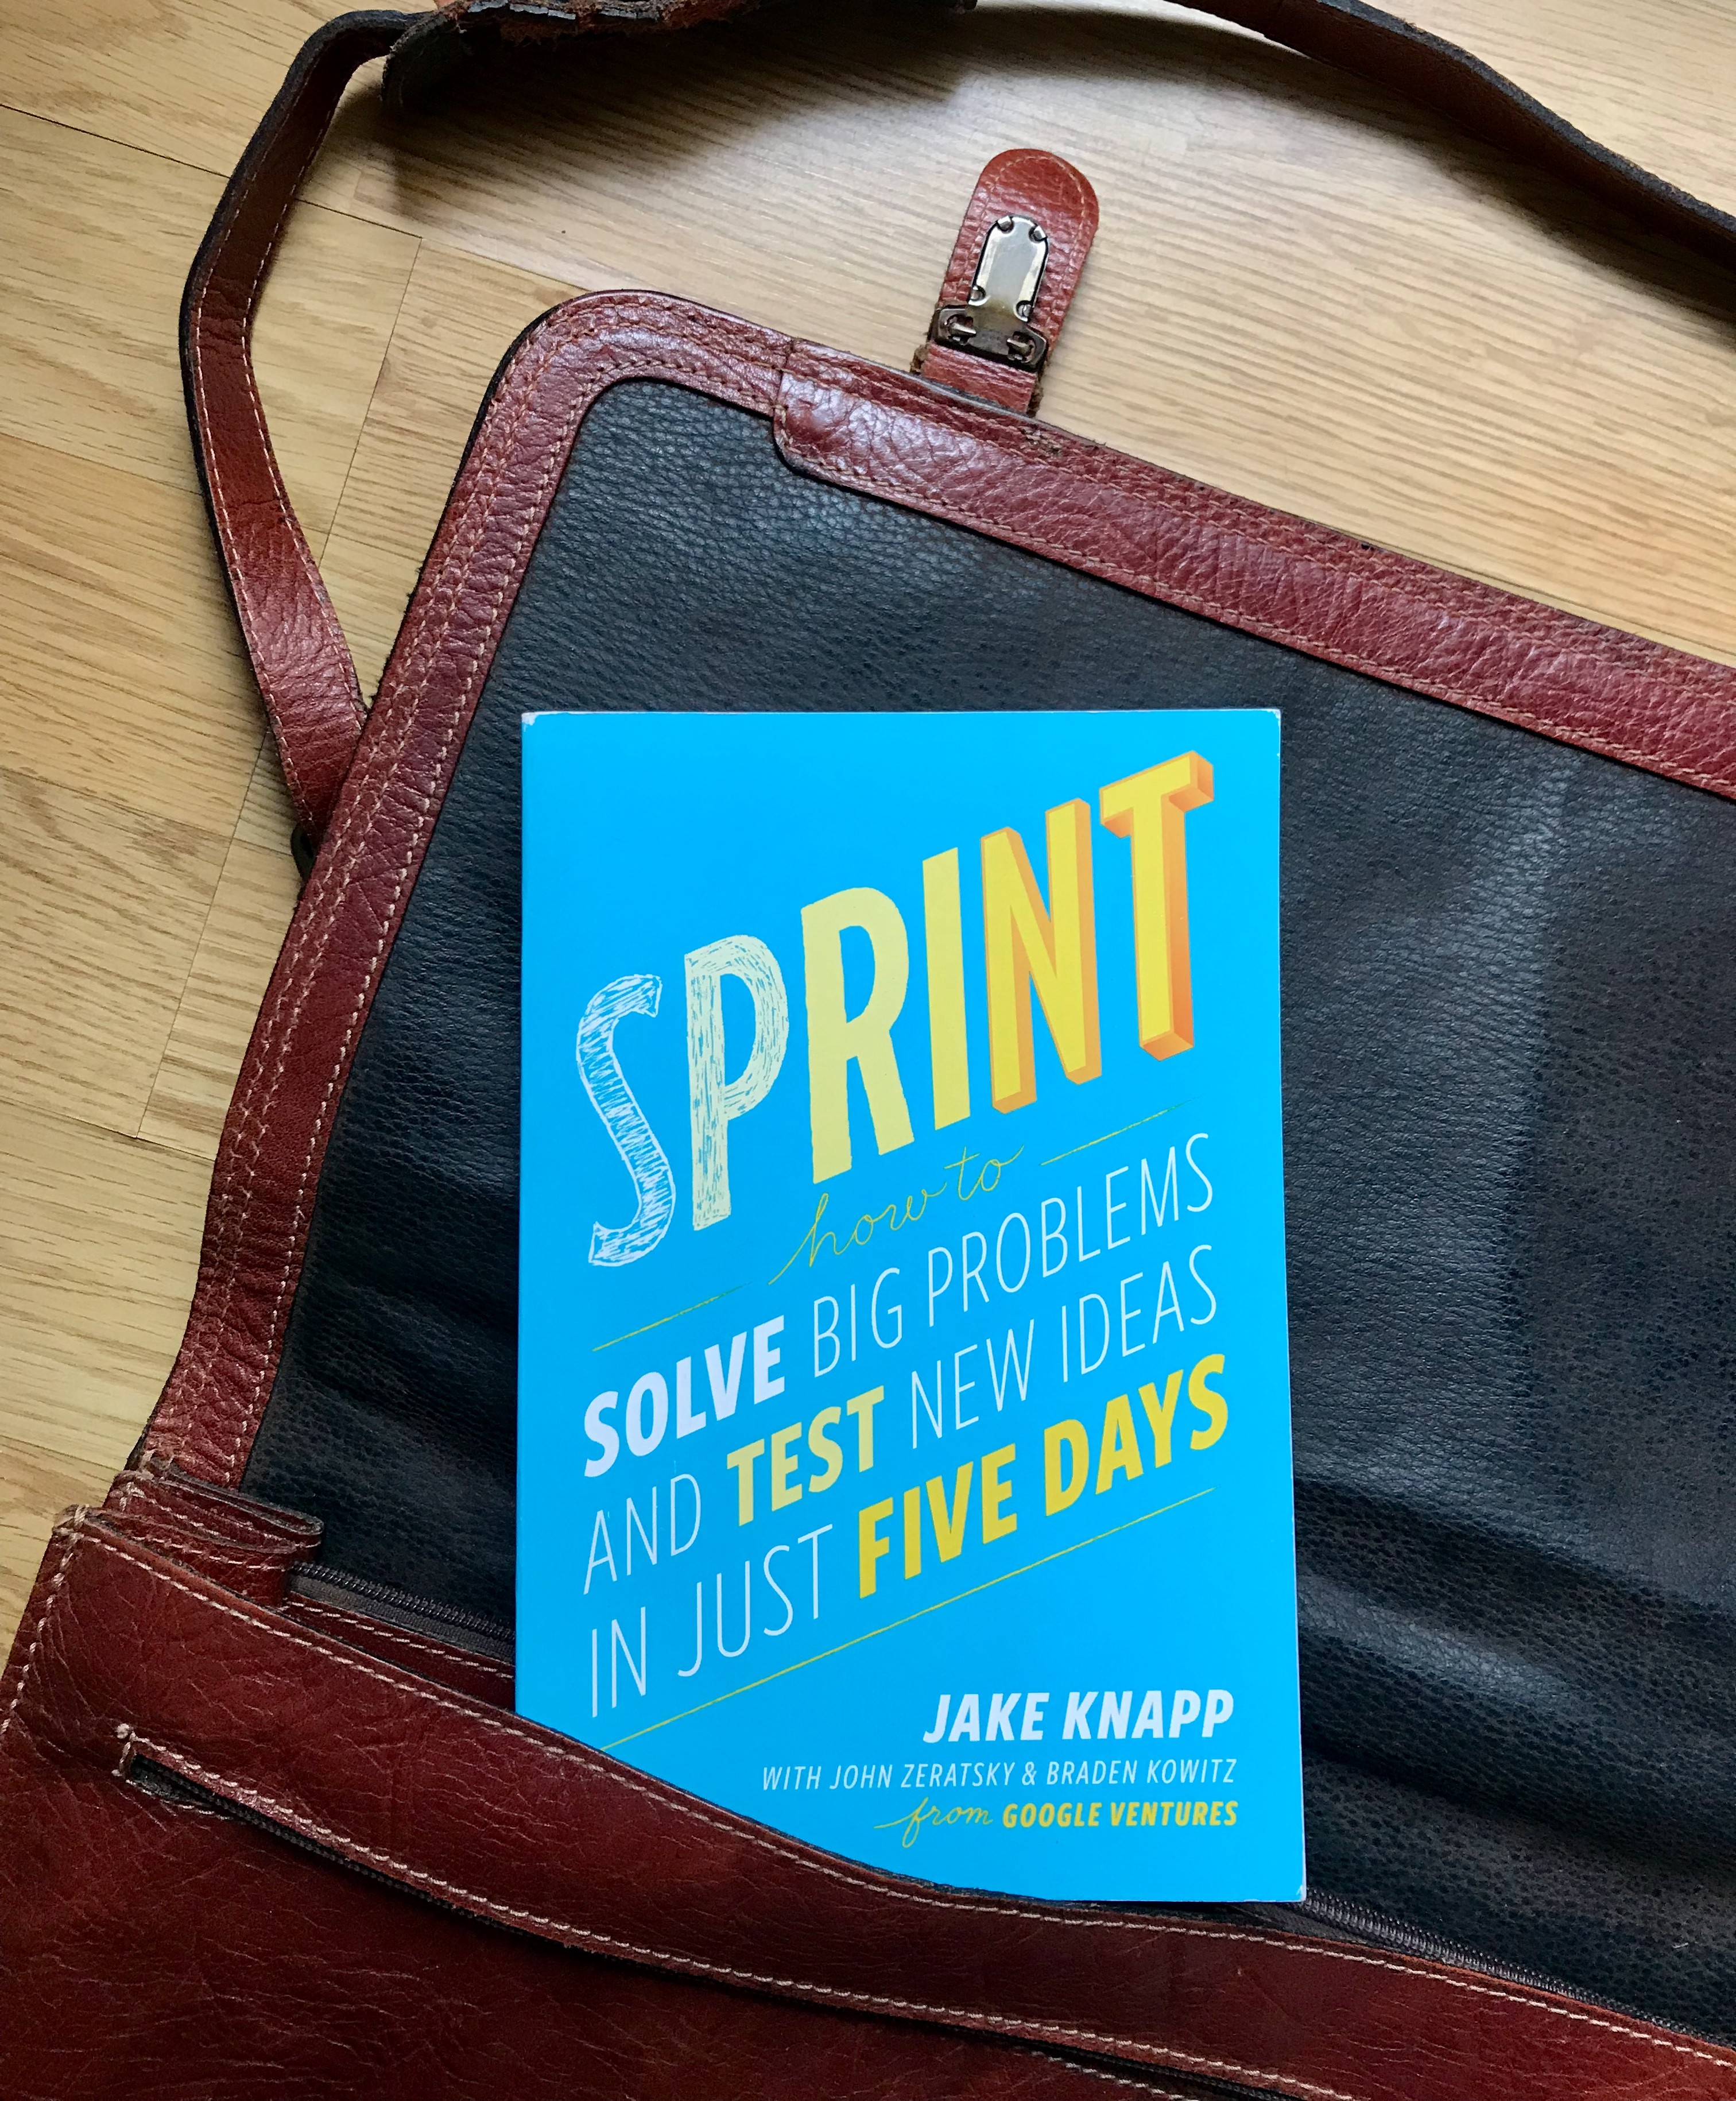 'Sprint' book by Jake Knapp coming out a leather shoulder bag